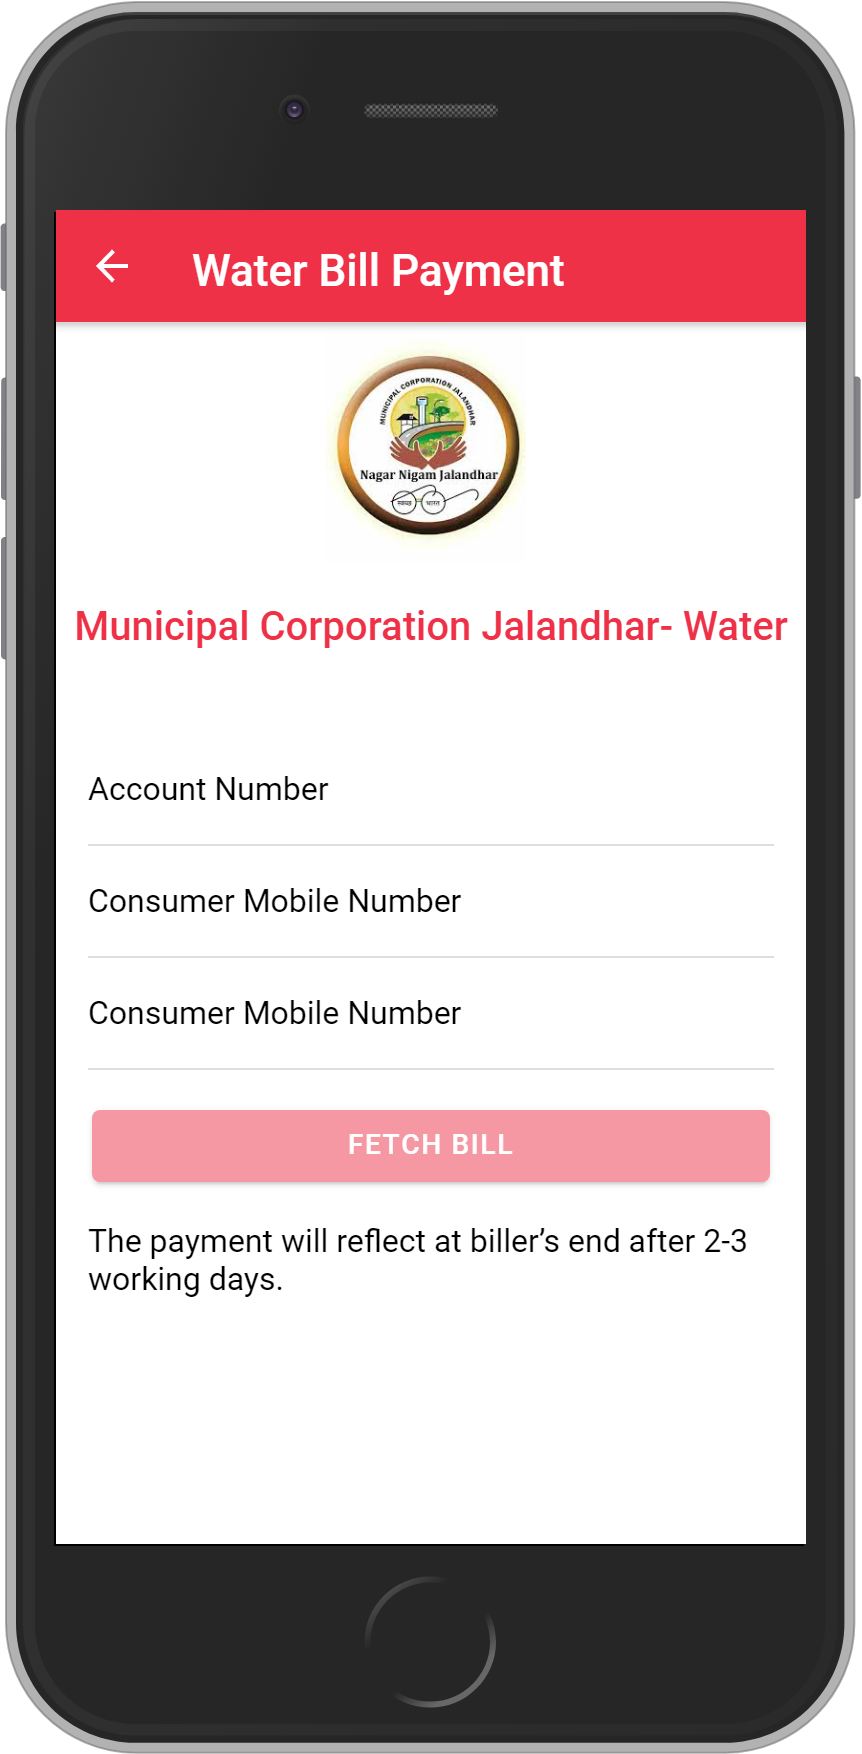 Get UNLIMITED <b>0.1%</b> CASHBACK on Municipal Corporation Jalandhar Bill Payment.